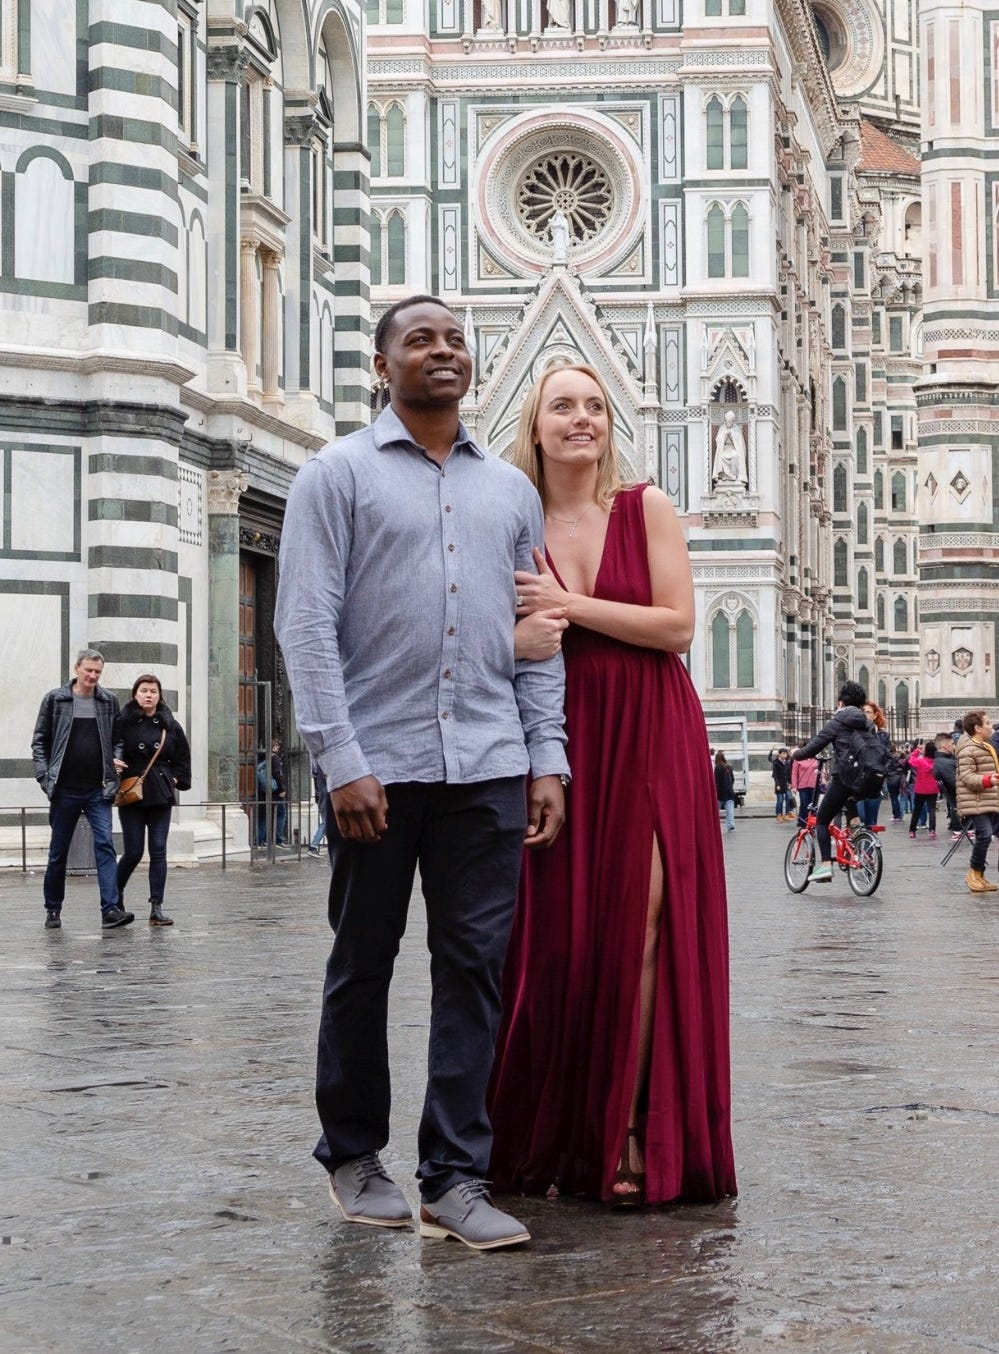 Jharel Cotton, right, and Emma Cotton traveled to Florence, Italy in November 2018 for an early celebration of their first wedding anniversary.